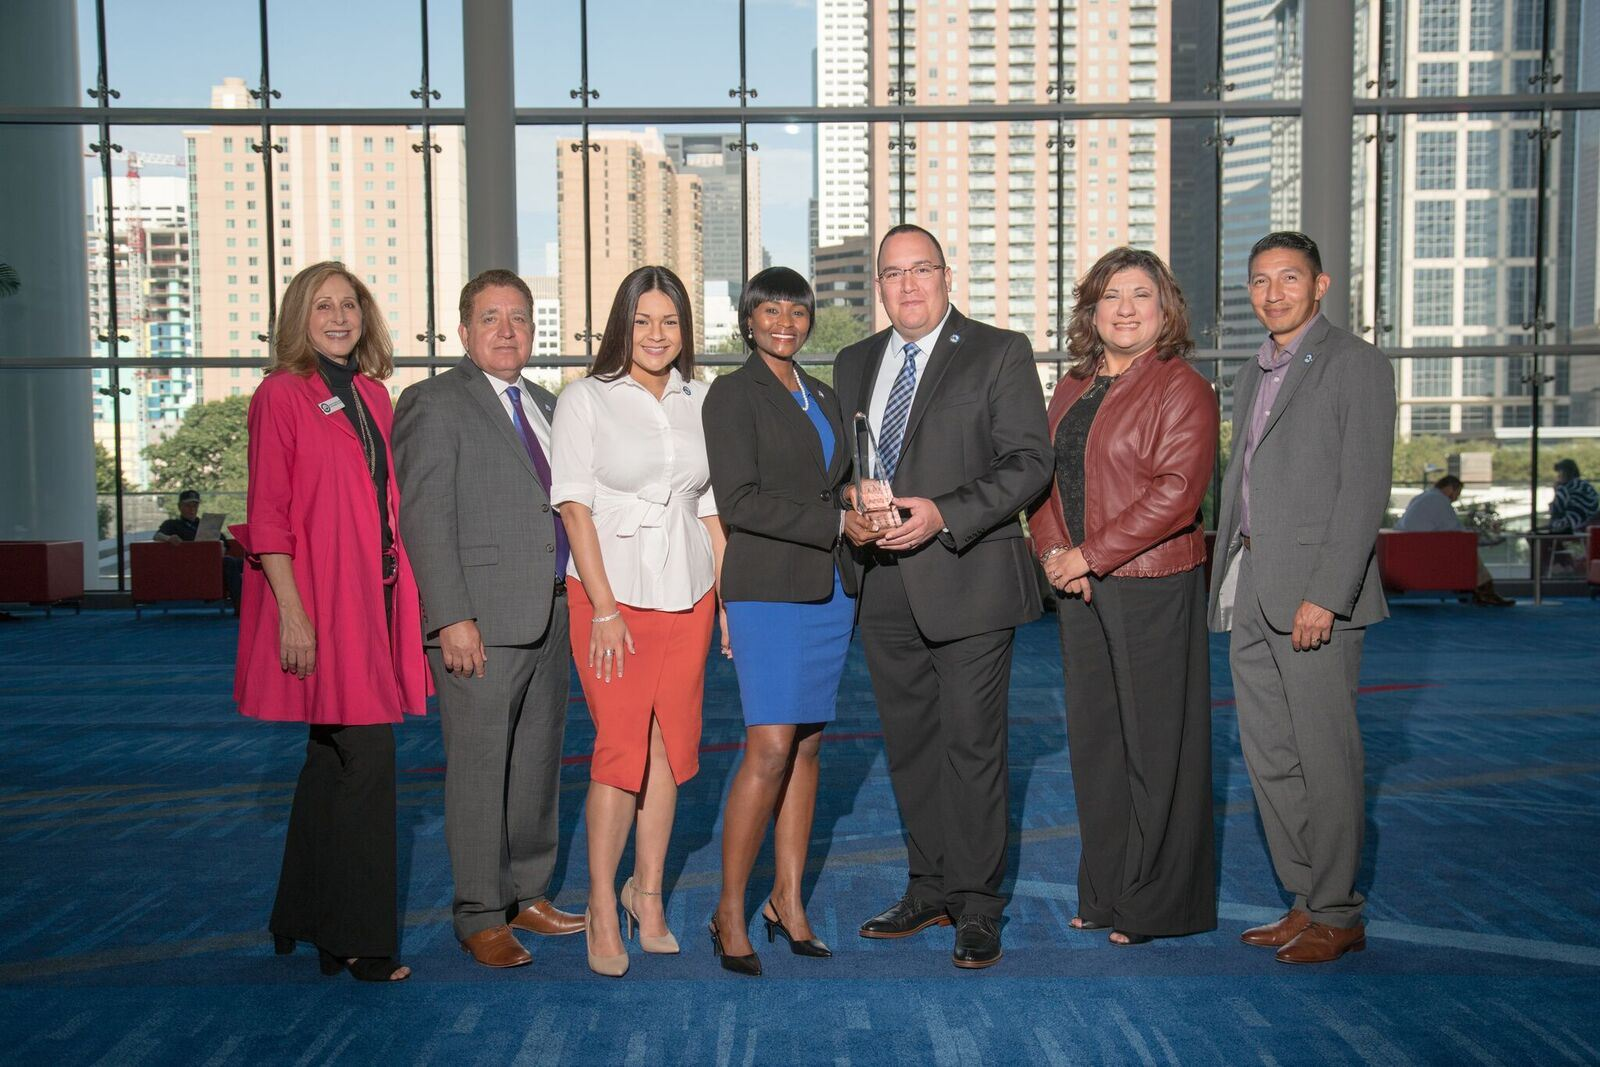 7 Corpus Christi employees together with one holding award at event